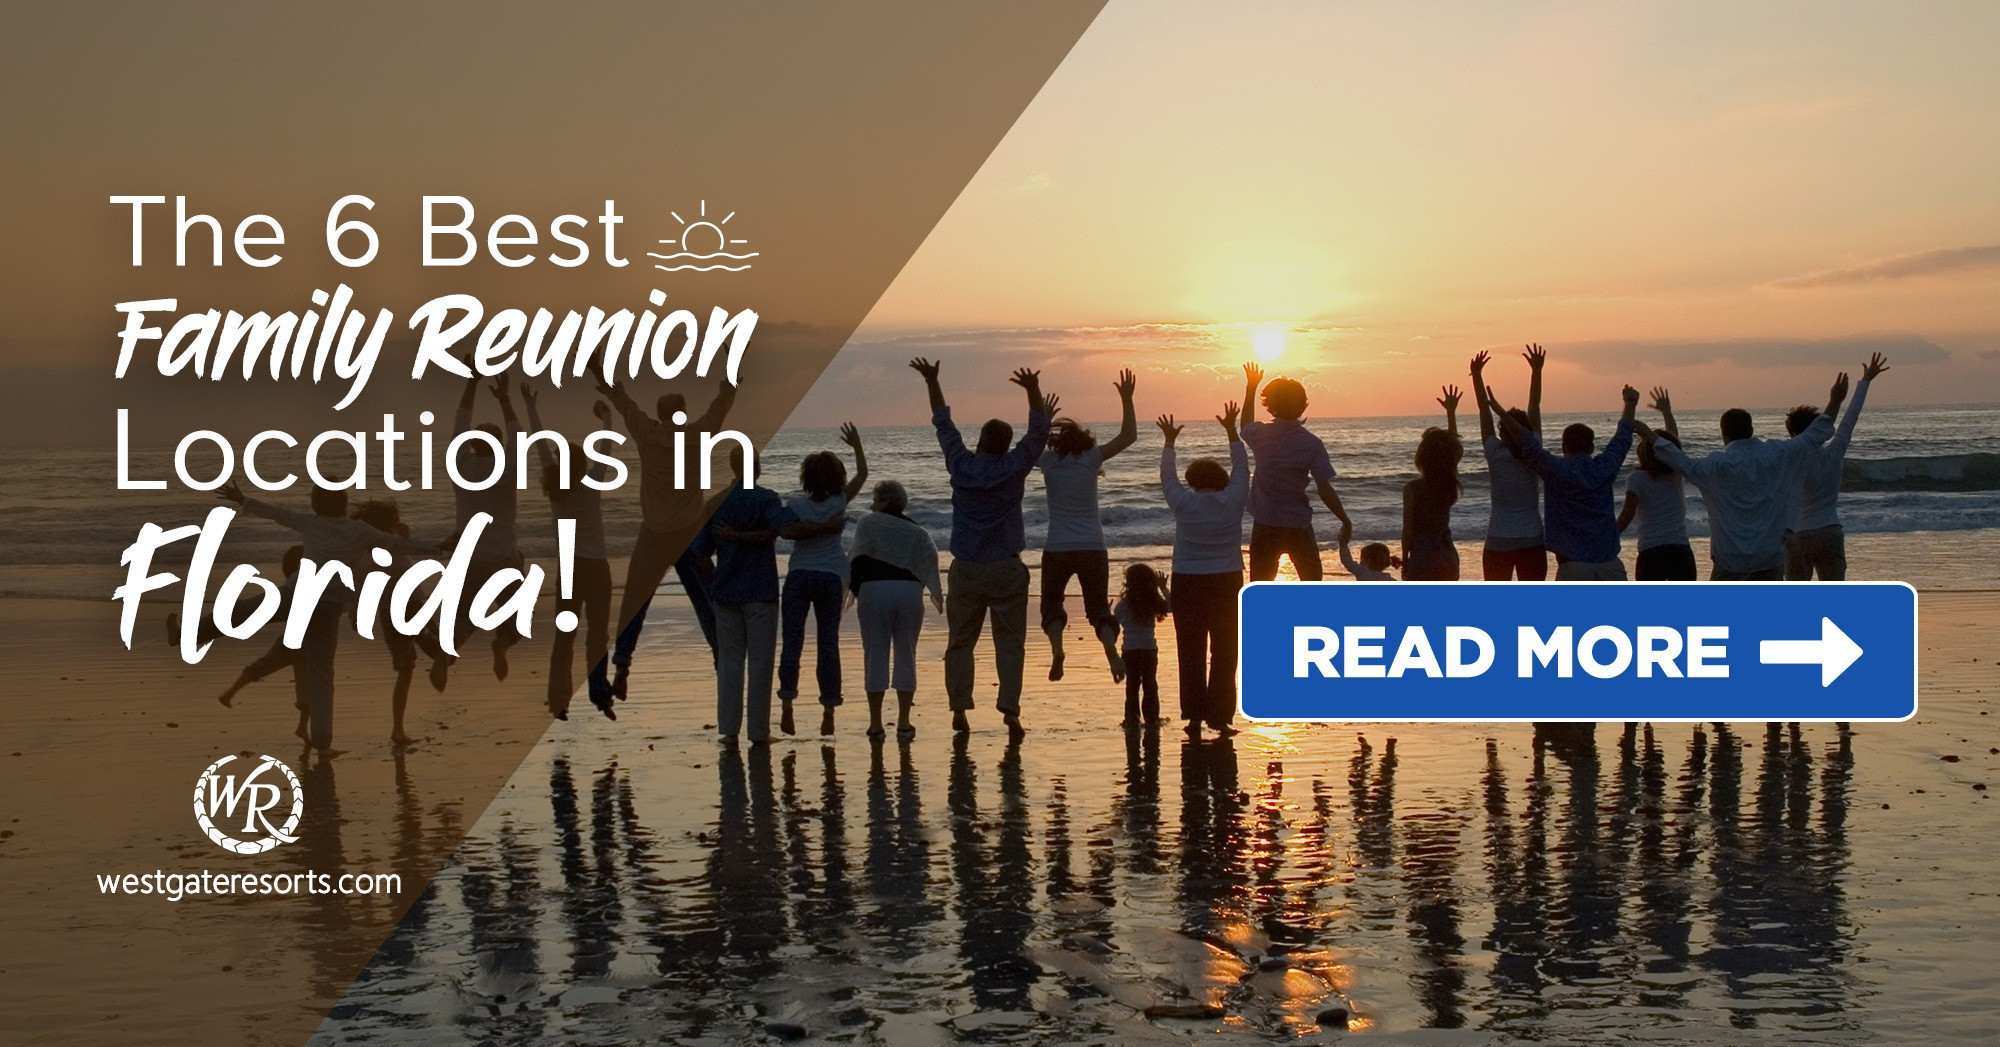 The 6 Best Family Reunion Locations in Florida!